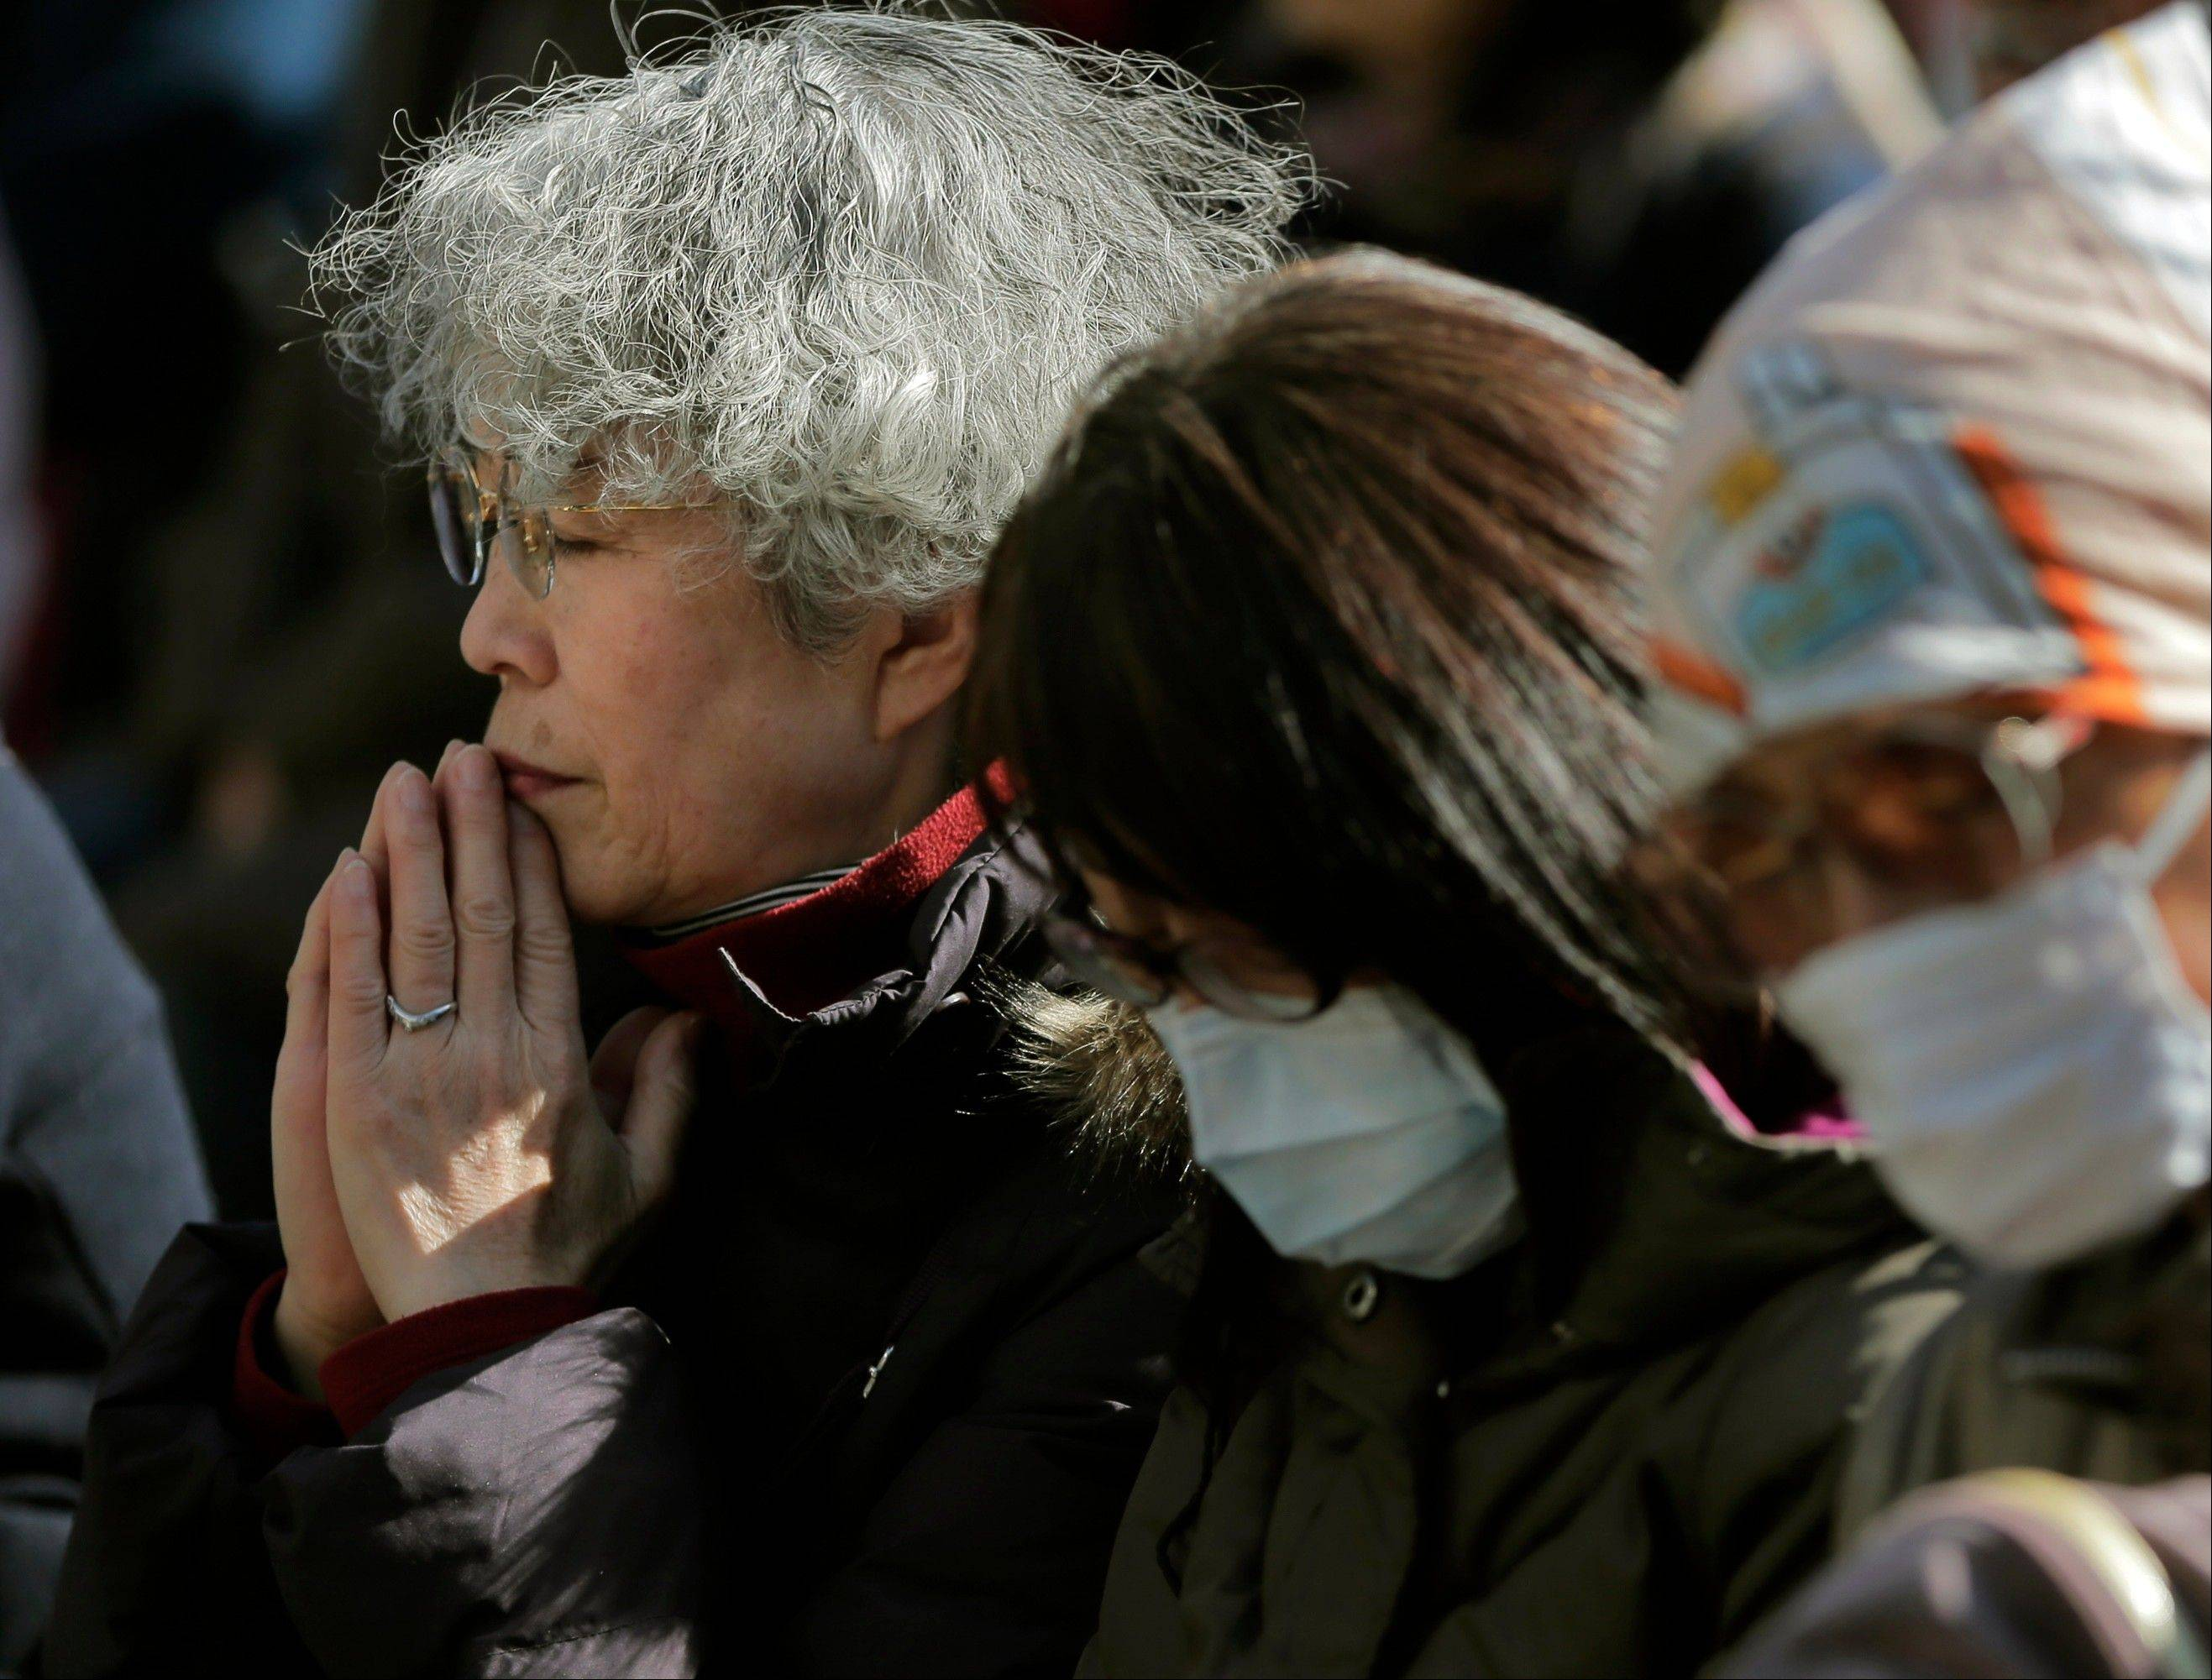 People observe a moment of silence for the victims of the March 11, 2011 earthquake and tsunami during an event at a park in Tokyo, Monday, March 11, 2013. Japan marked the second anniversary on Monday of a devastating earthquake and tsunami that left nearly 19,000 people dead or missing.